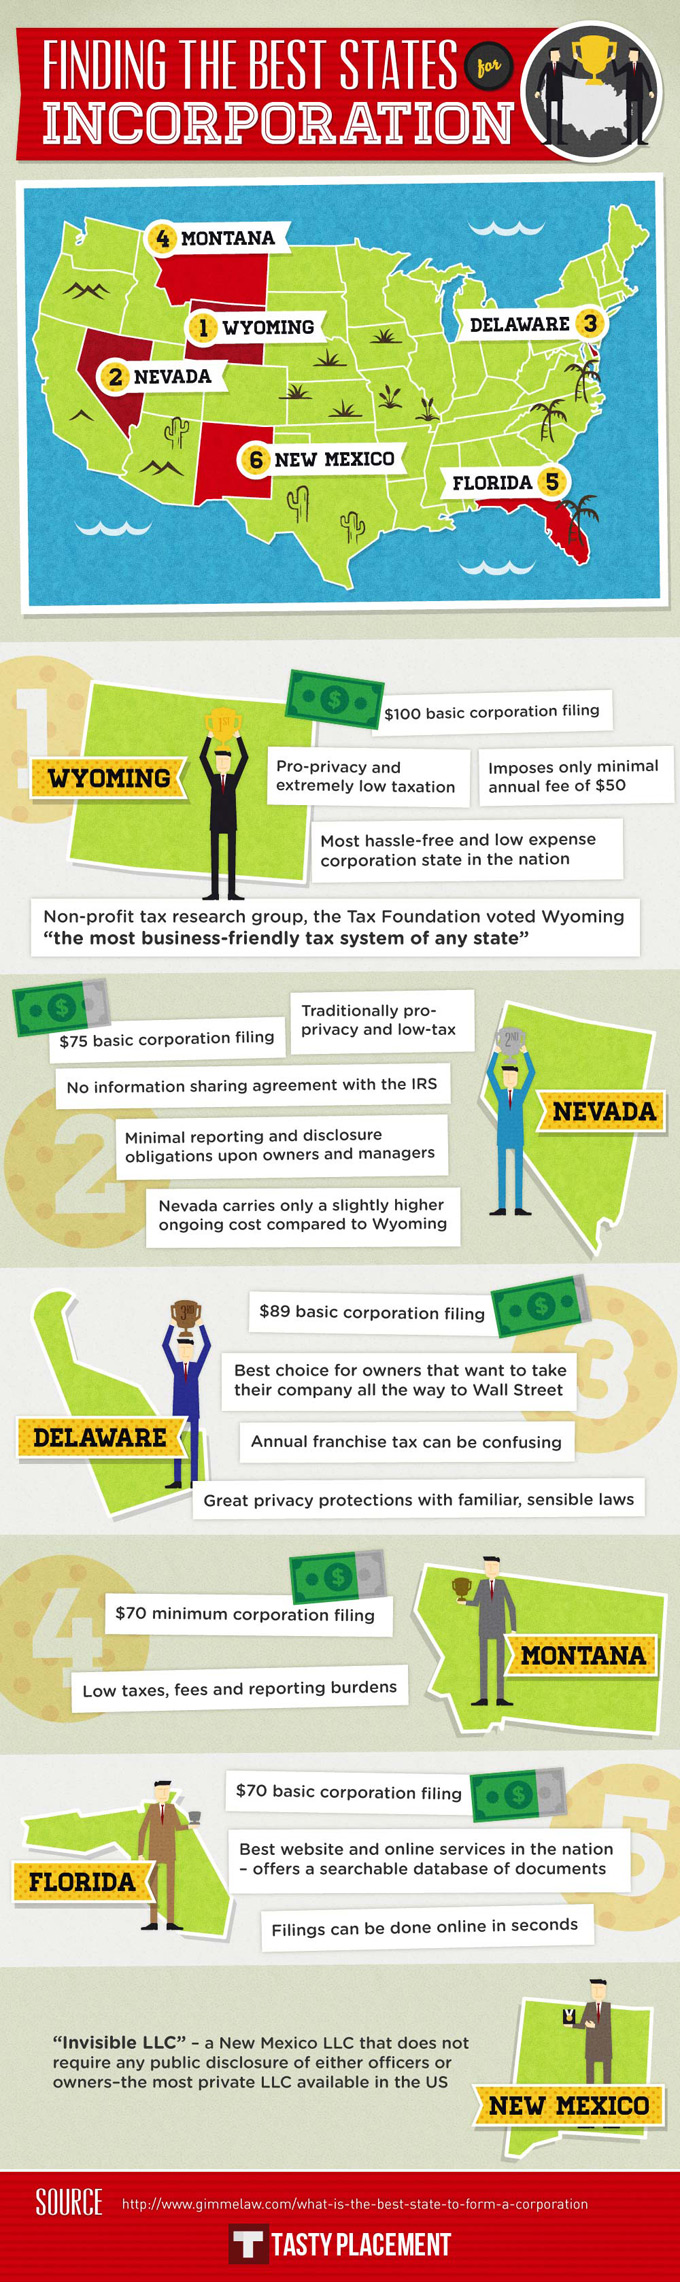 Best States for Incorporation Infographic